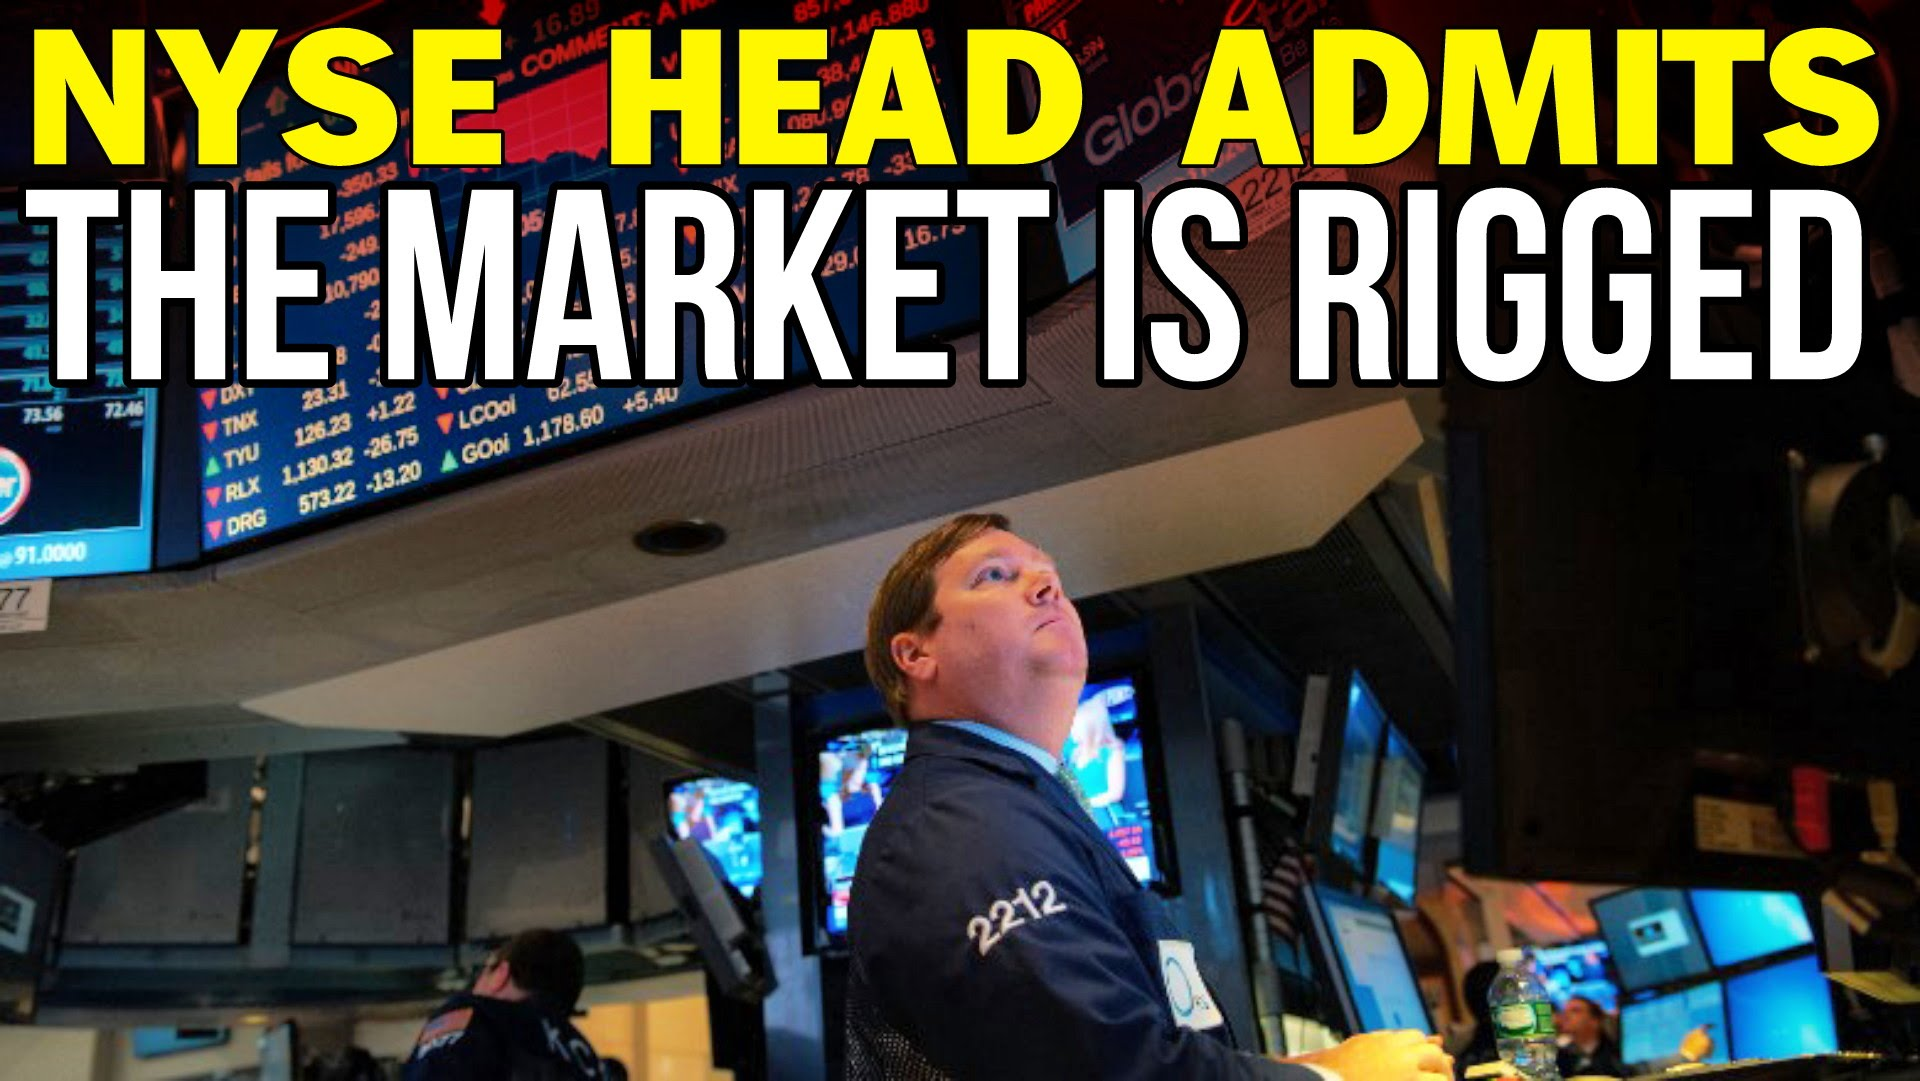 The Stock Market Is Rigged